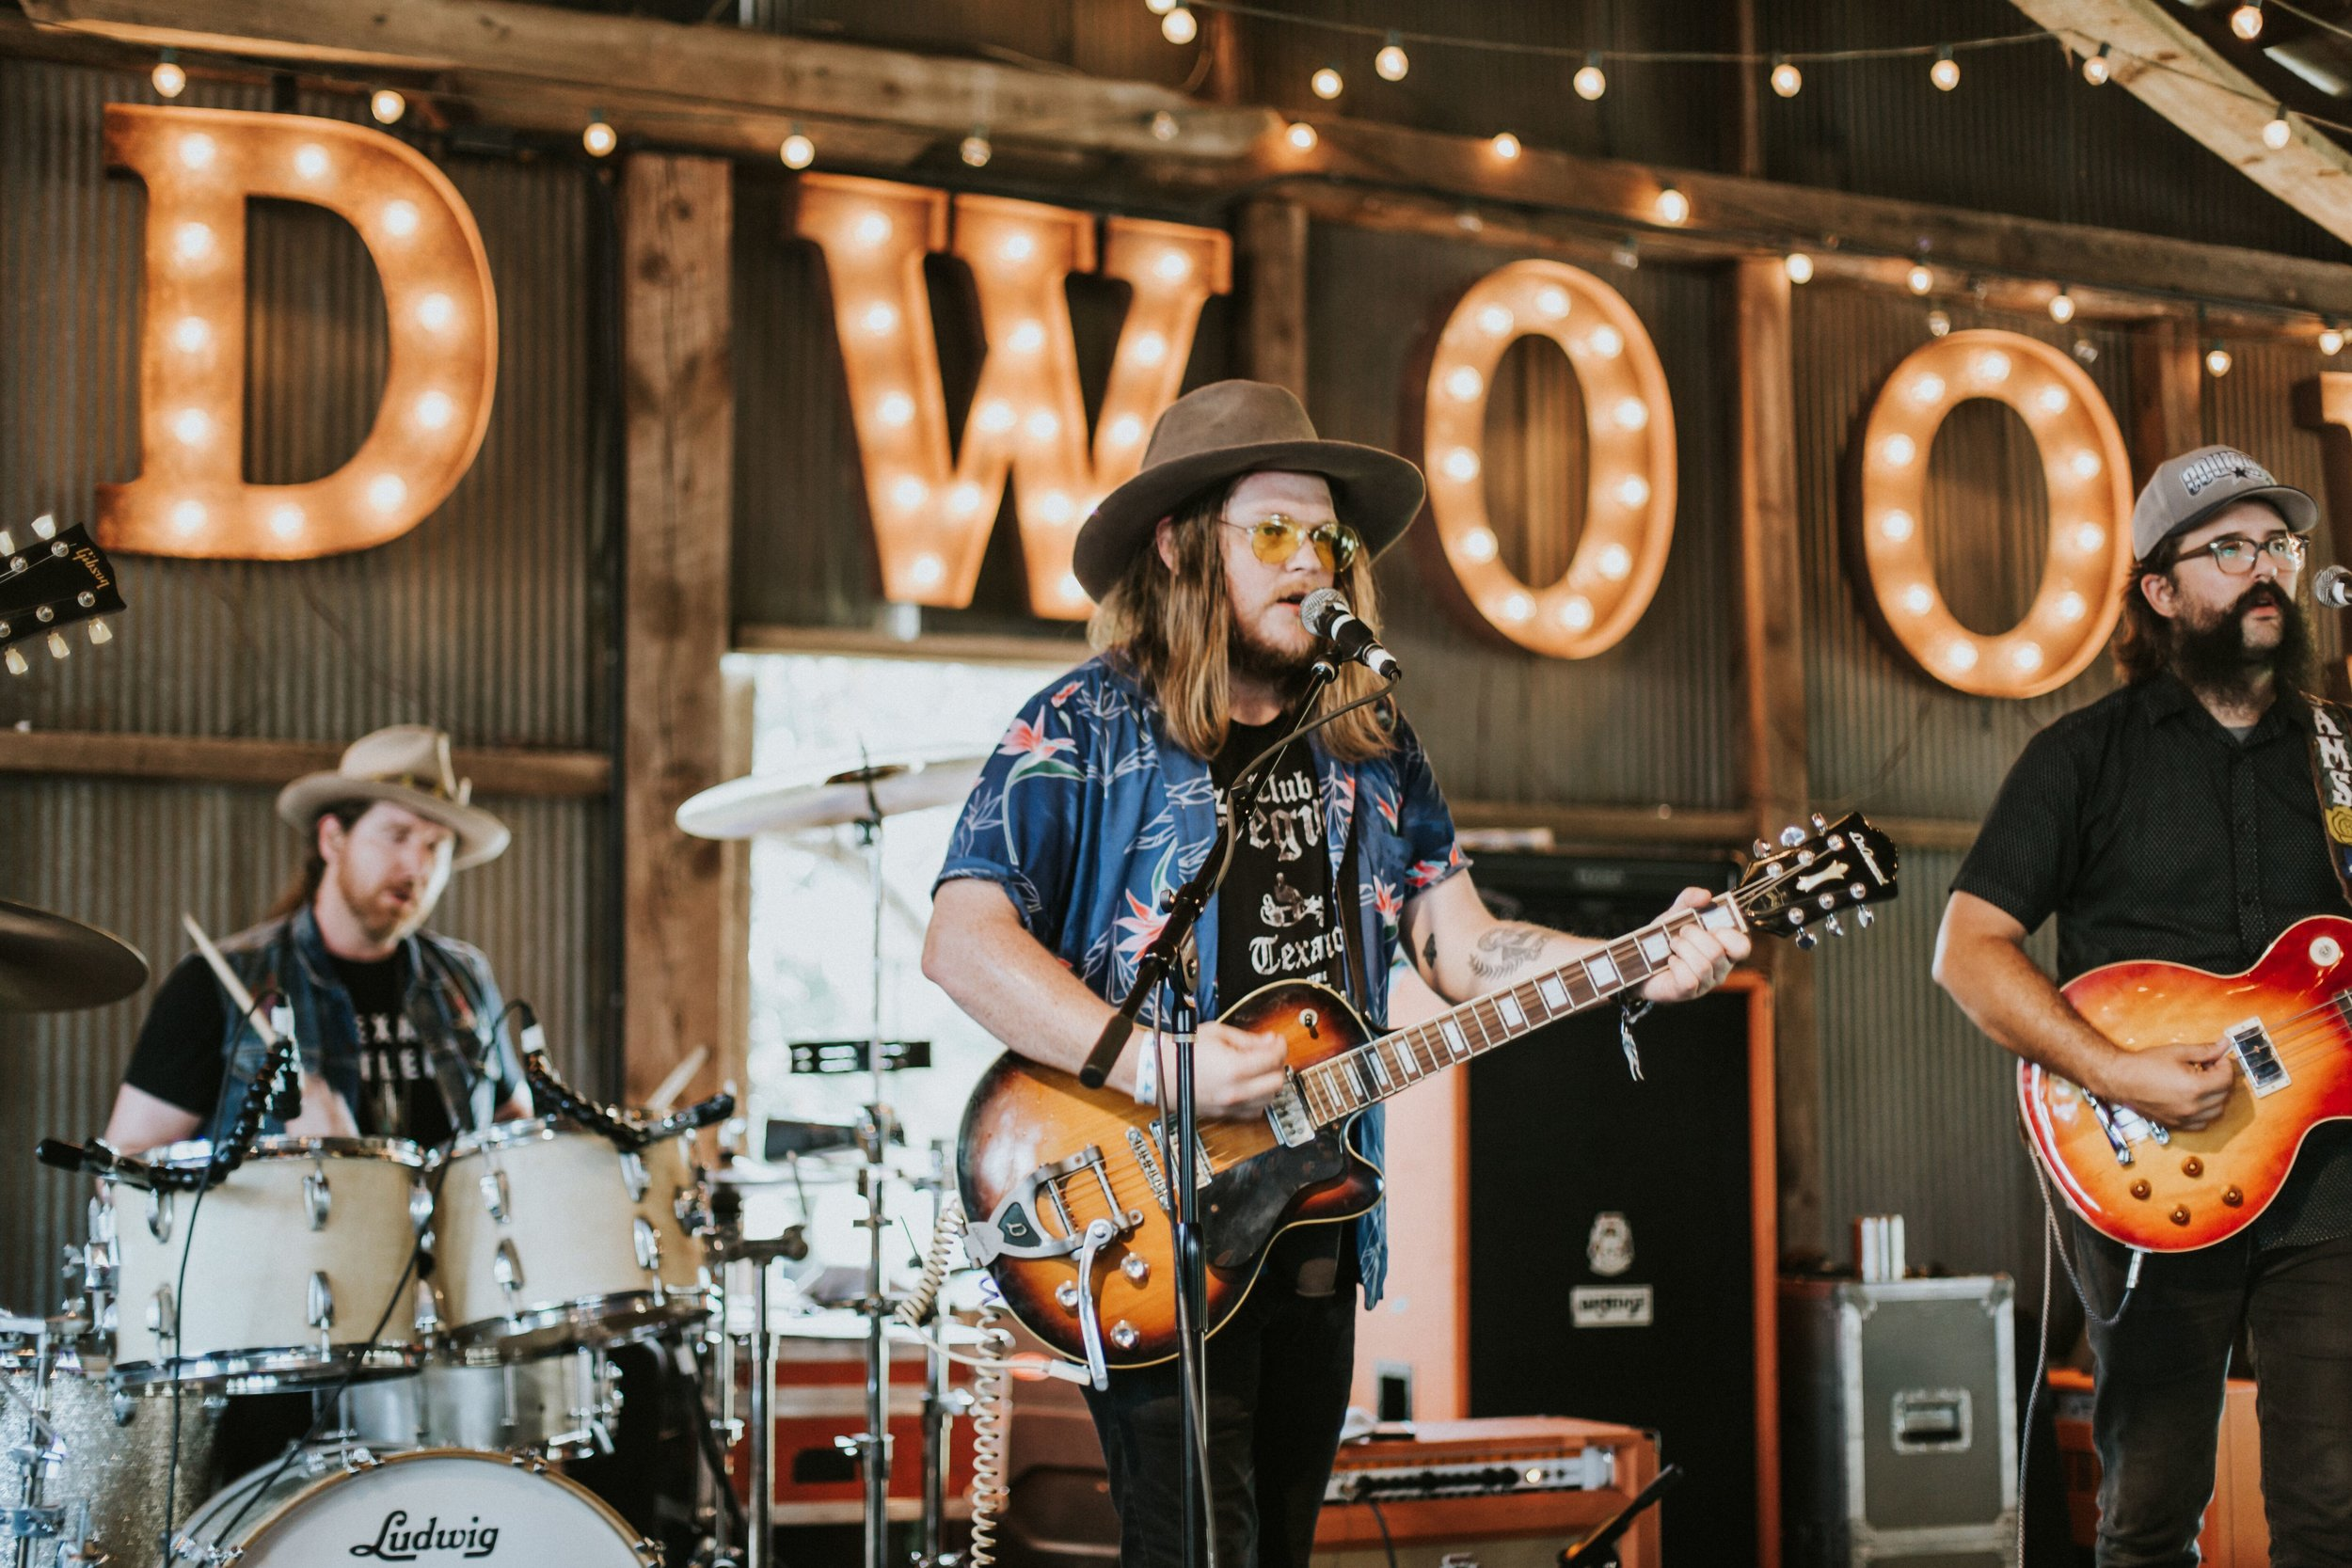 WILDWOOD REVIVAL UNVEILS FULL PERFORMER LINEUP